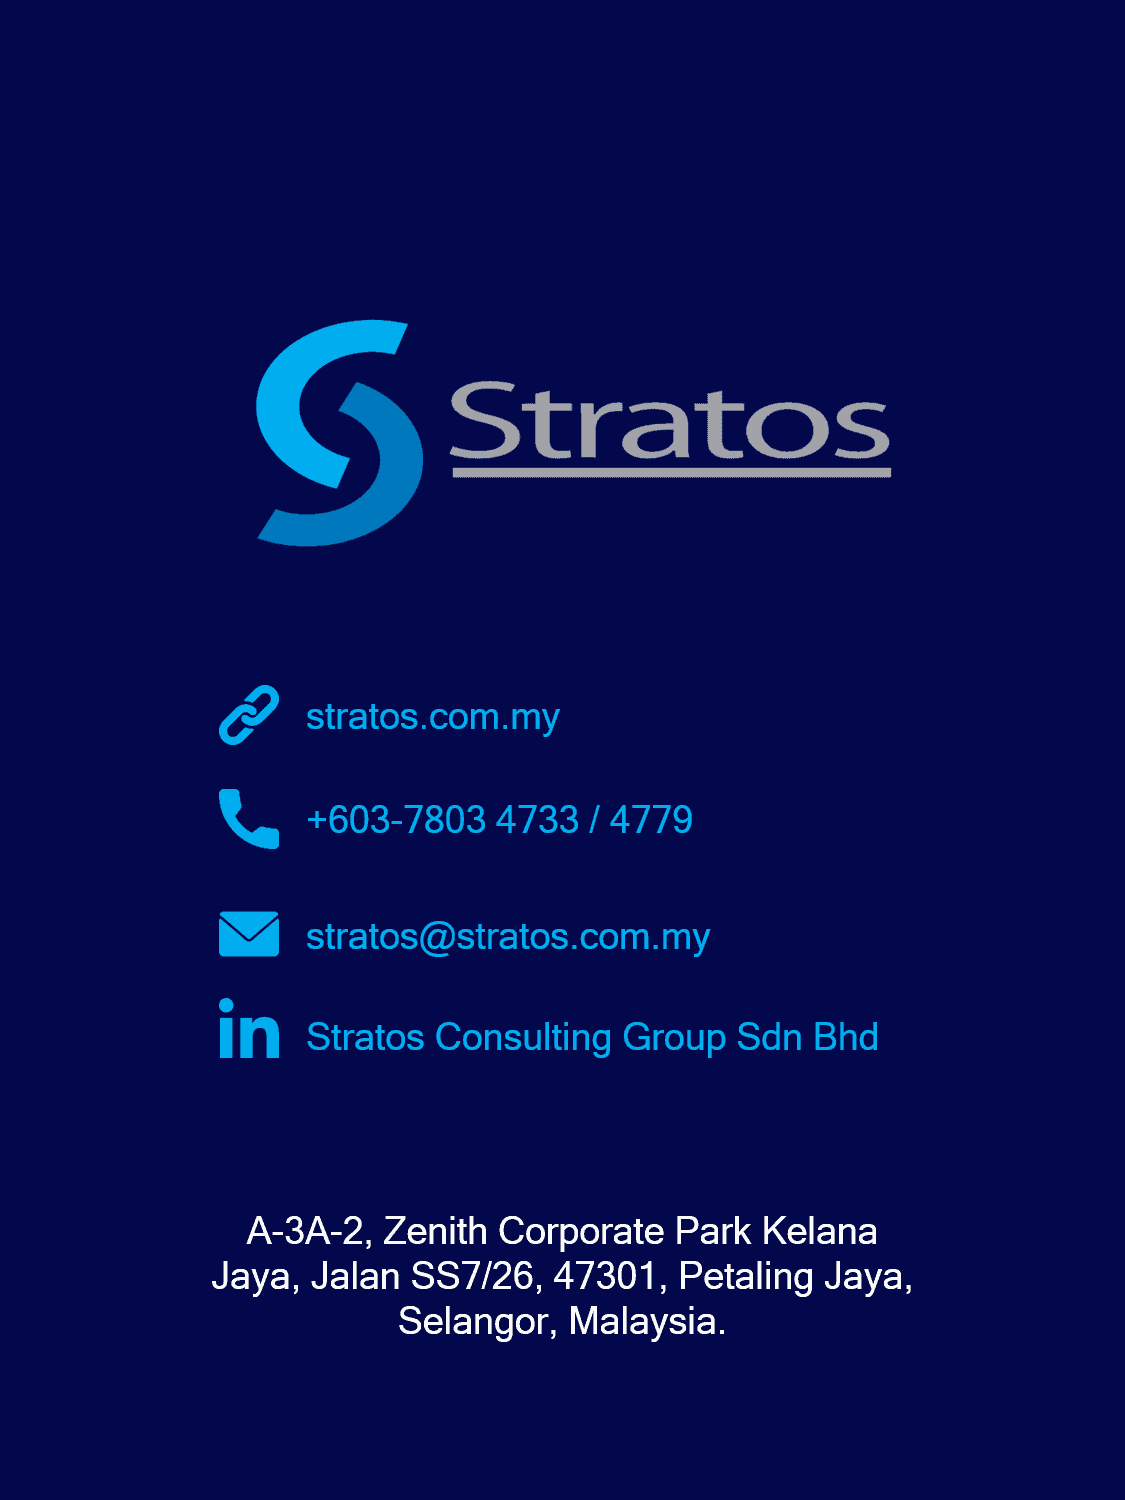 Stratos Consulting Group contact details